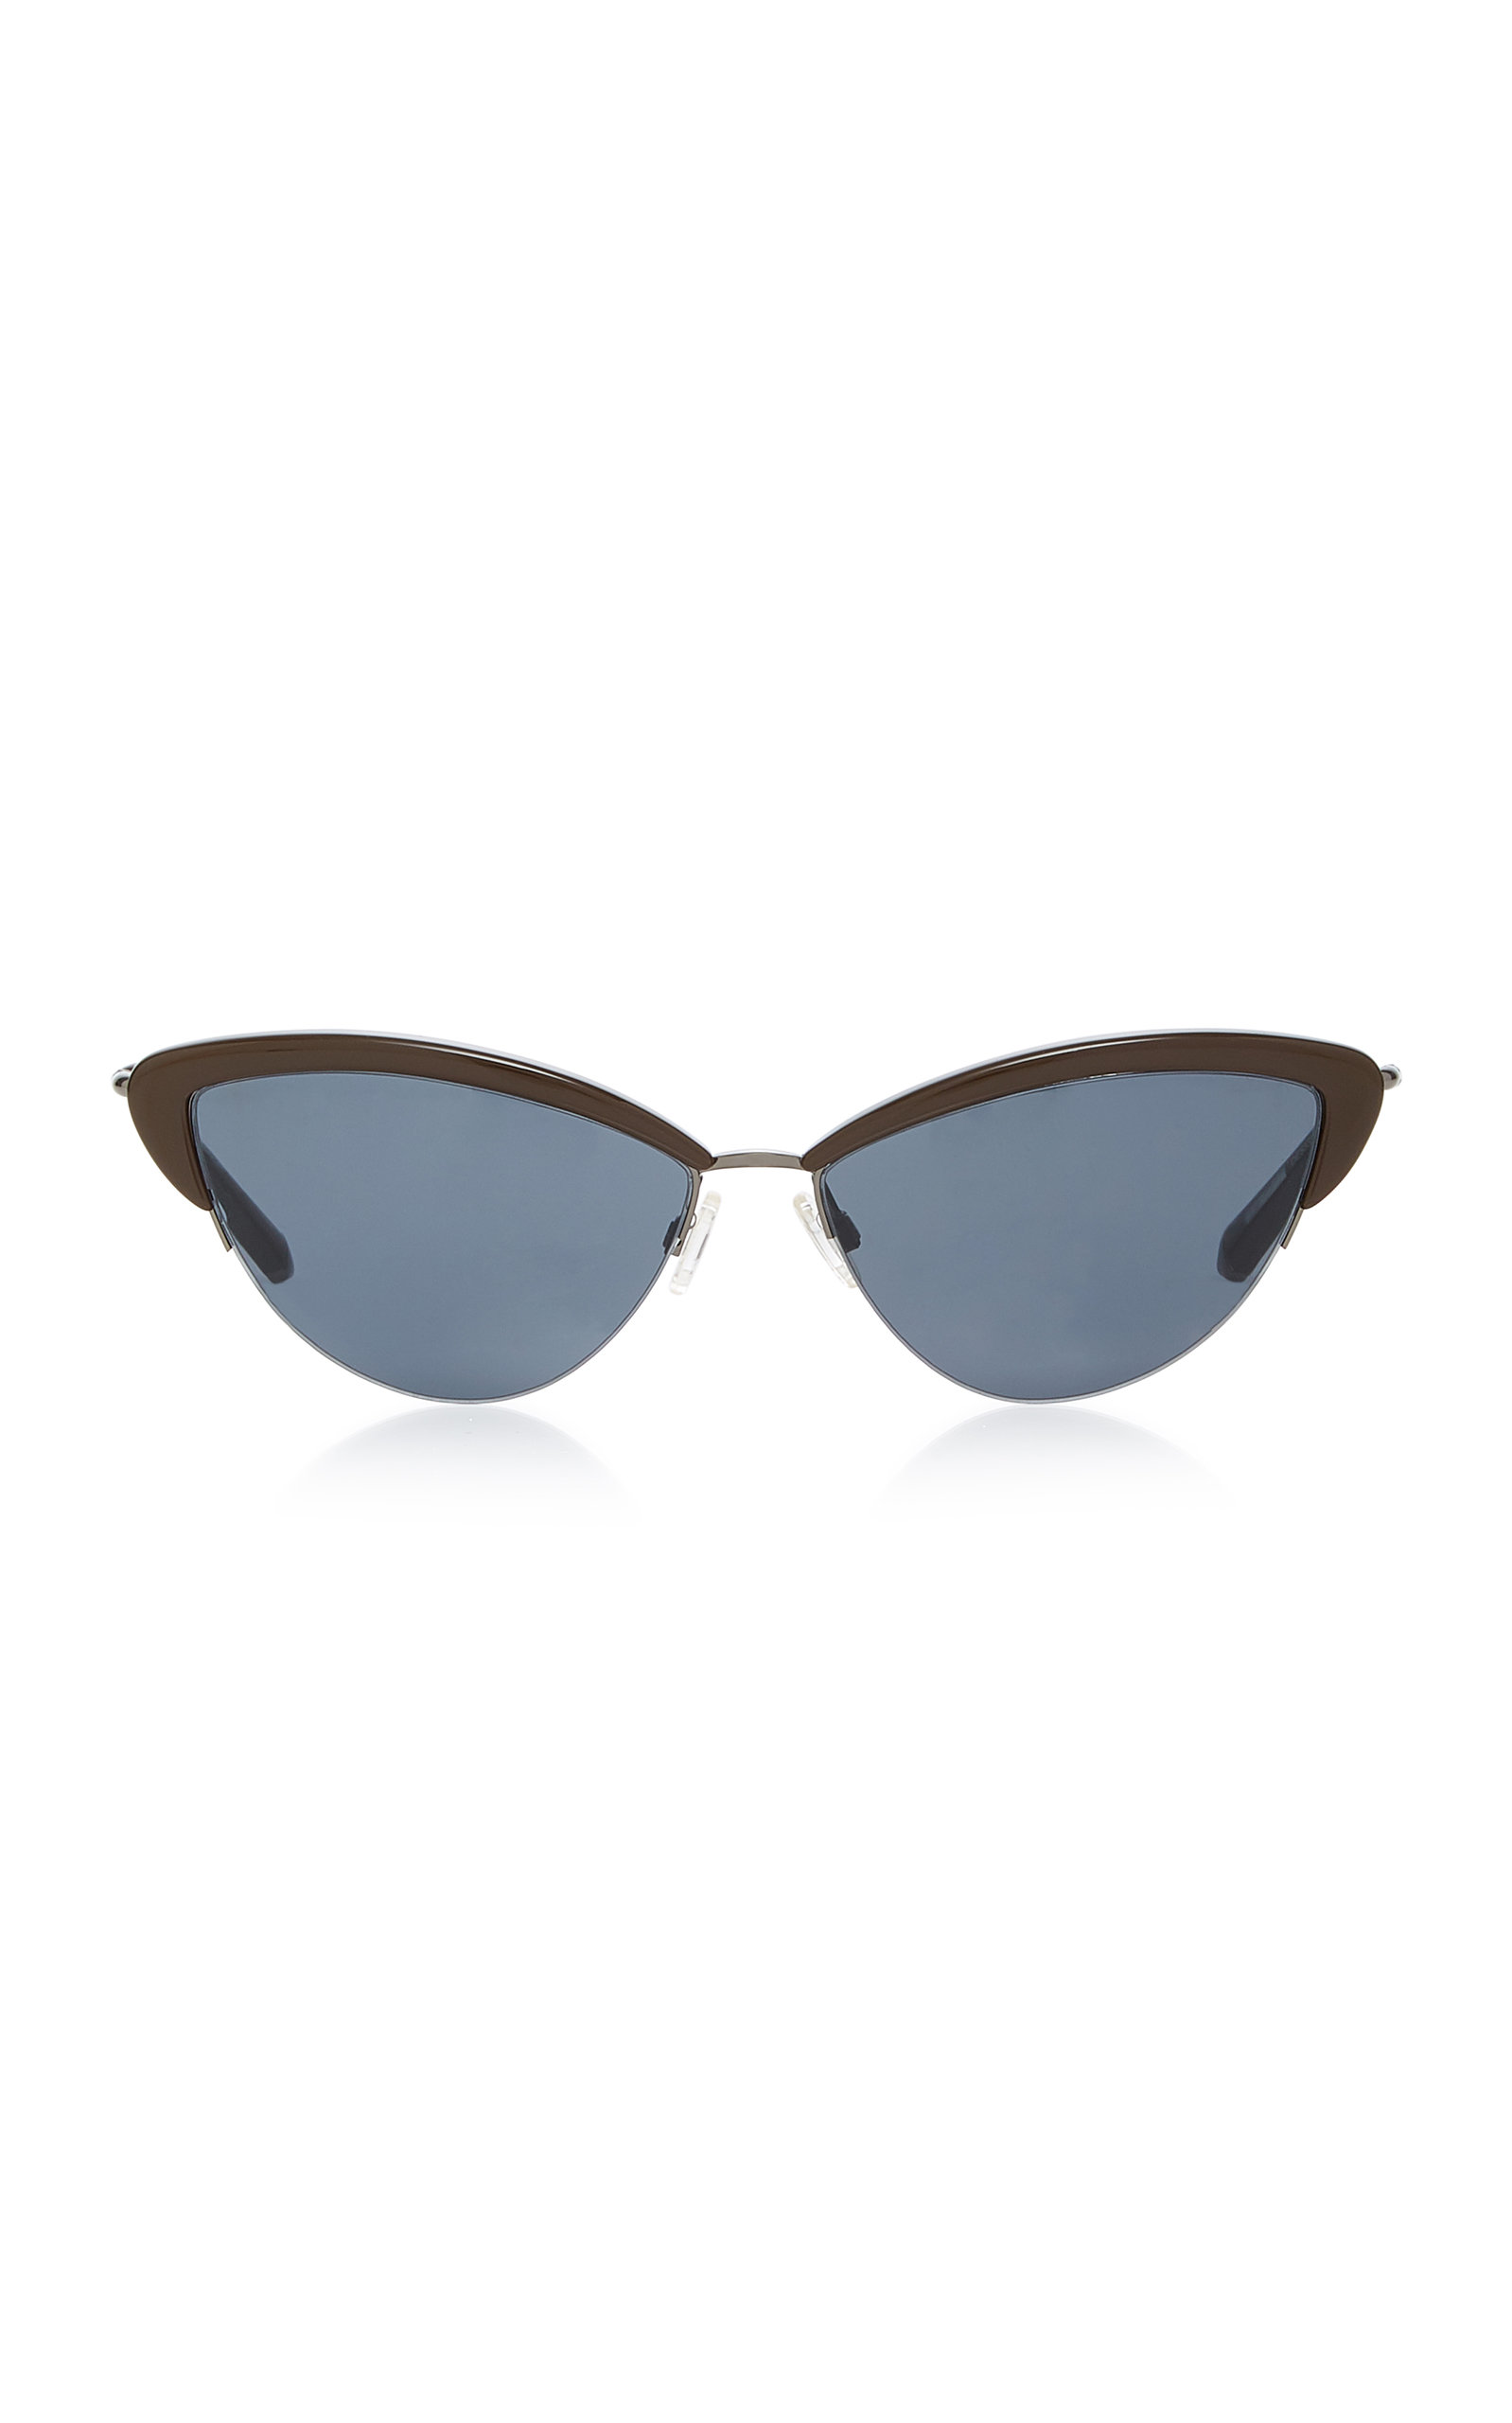 KATE YOUNG Ally Cat-Eye Acetate And Stainless-Steel Sunglasses in Neutral